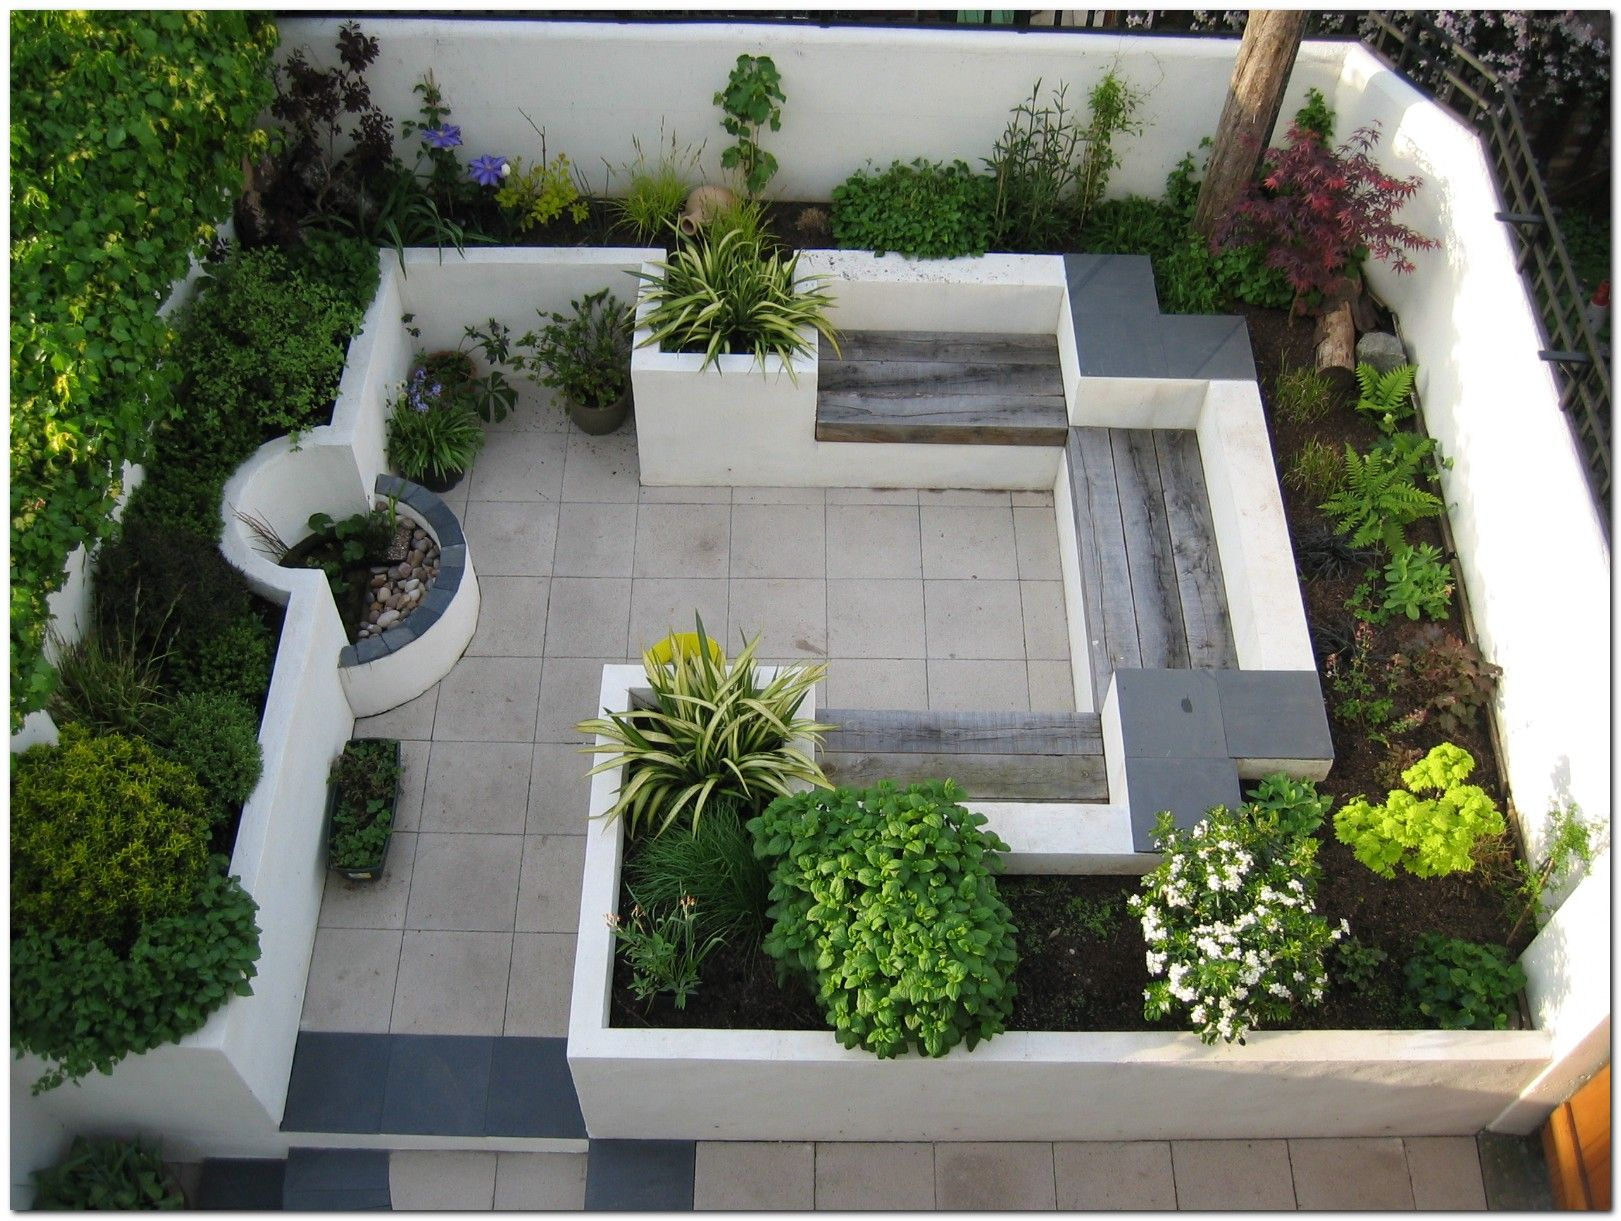 100 Smart Ideas To Add More Seating To Small House The Urban Interior Small Courtyard Gardens Small Garden Design Courtyard Gardens Design